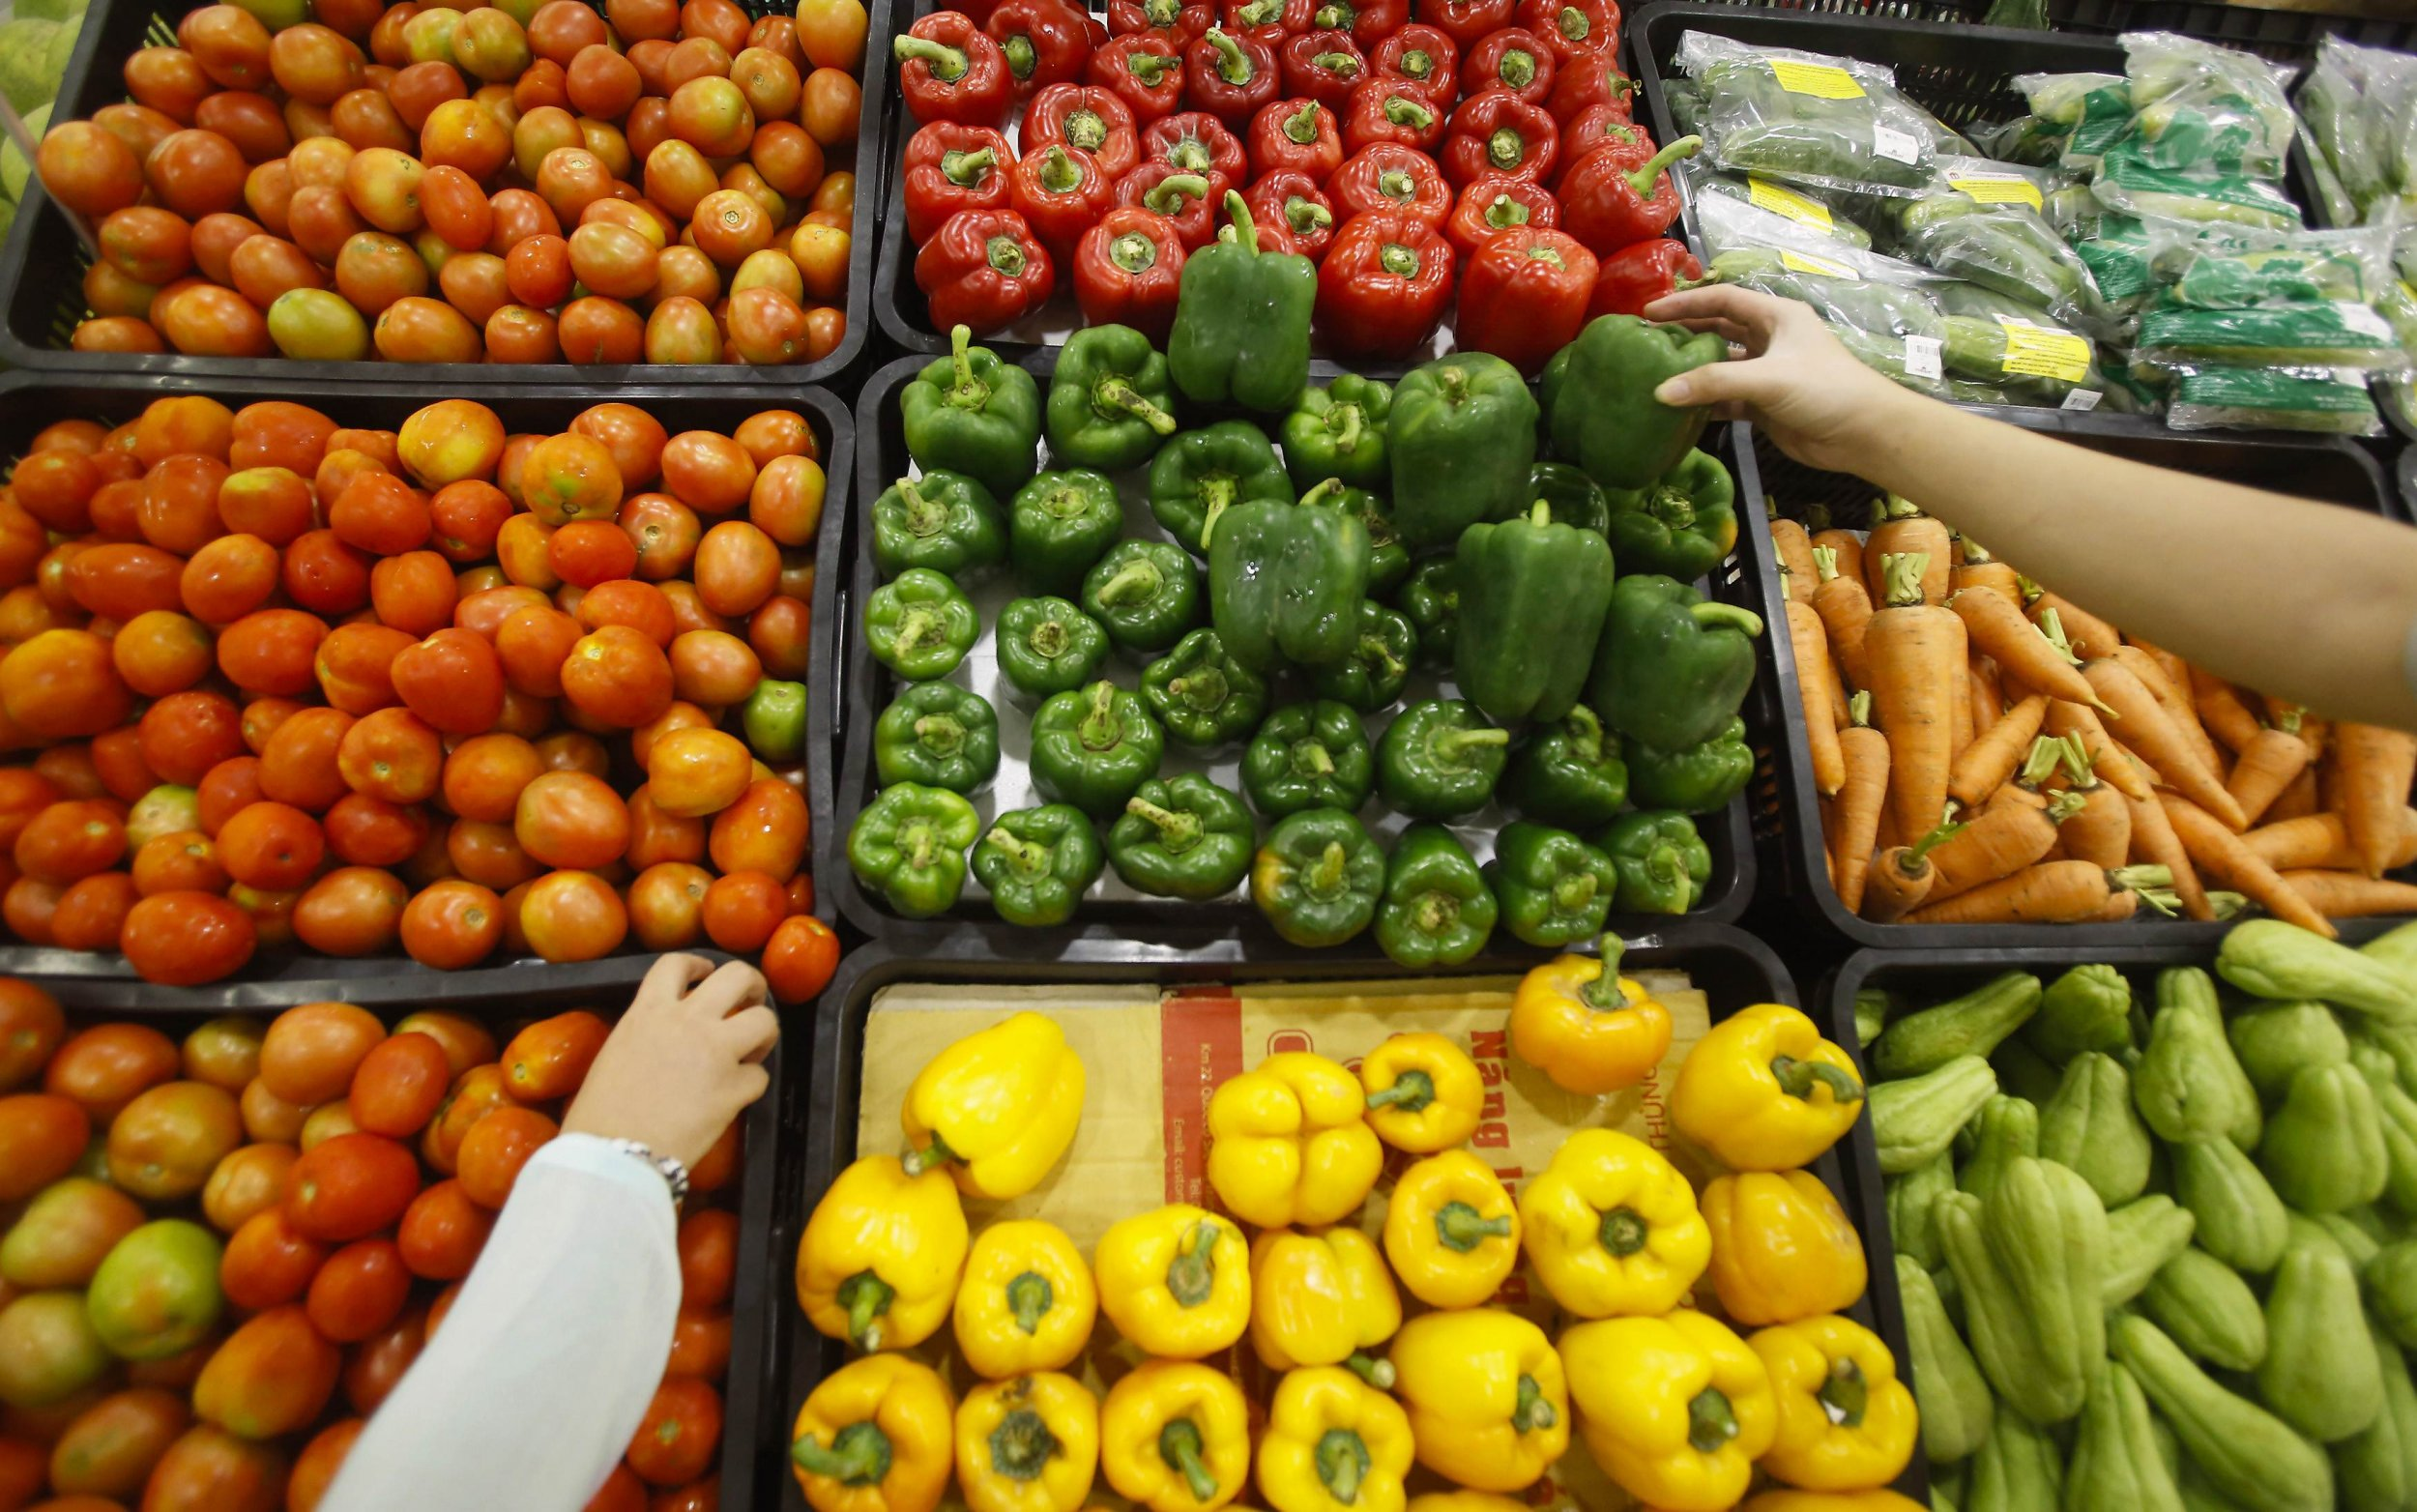 Healthy Food That Is Not Expensive